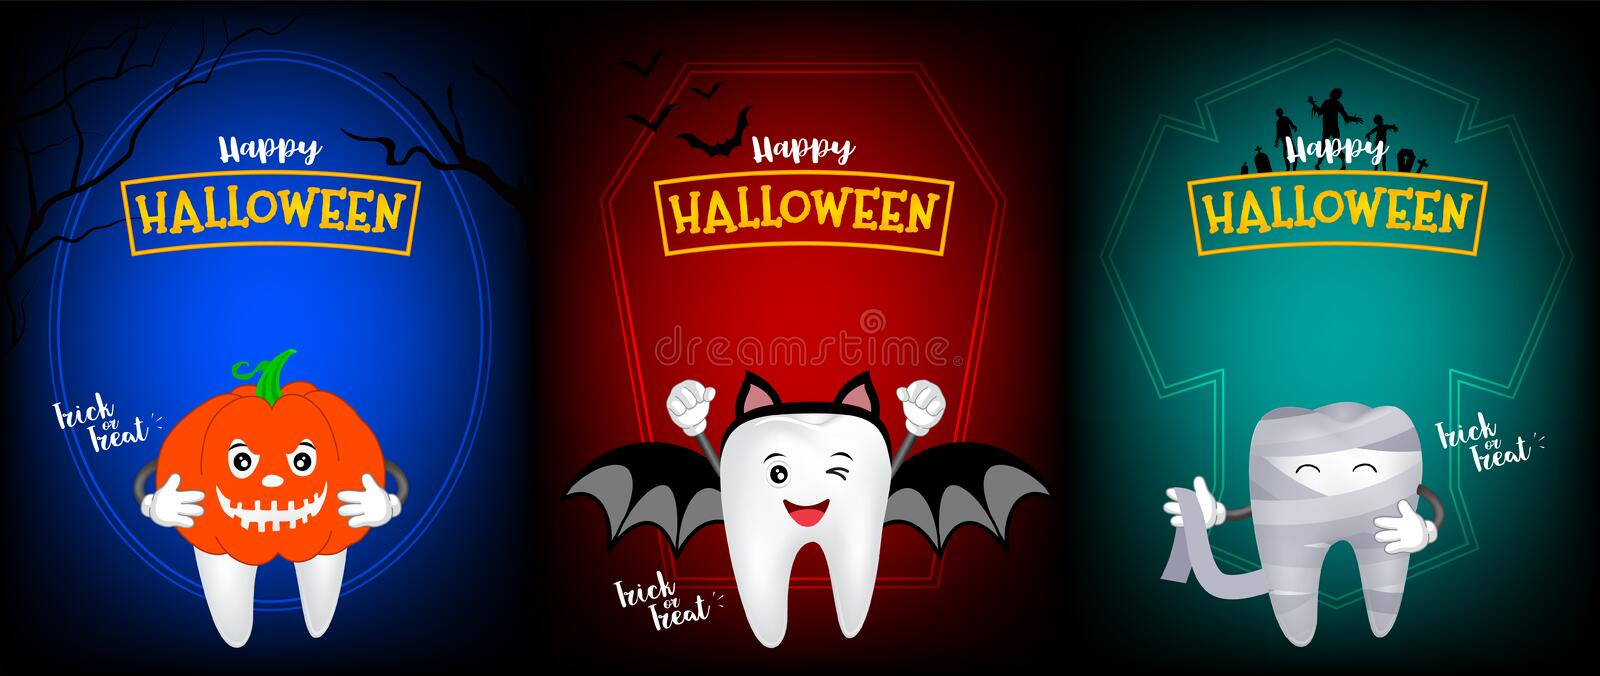 Cute scary tooth character design of pumpkin, bat and mummy. royalty free illustration